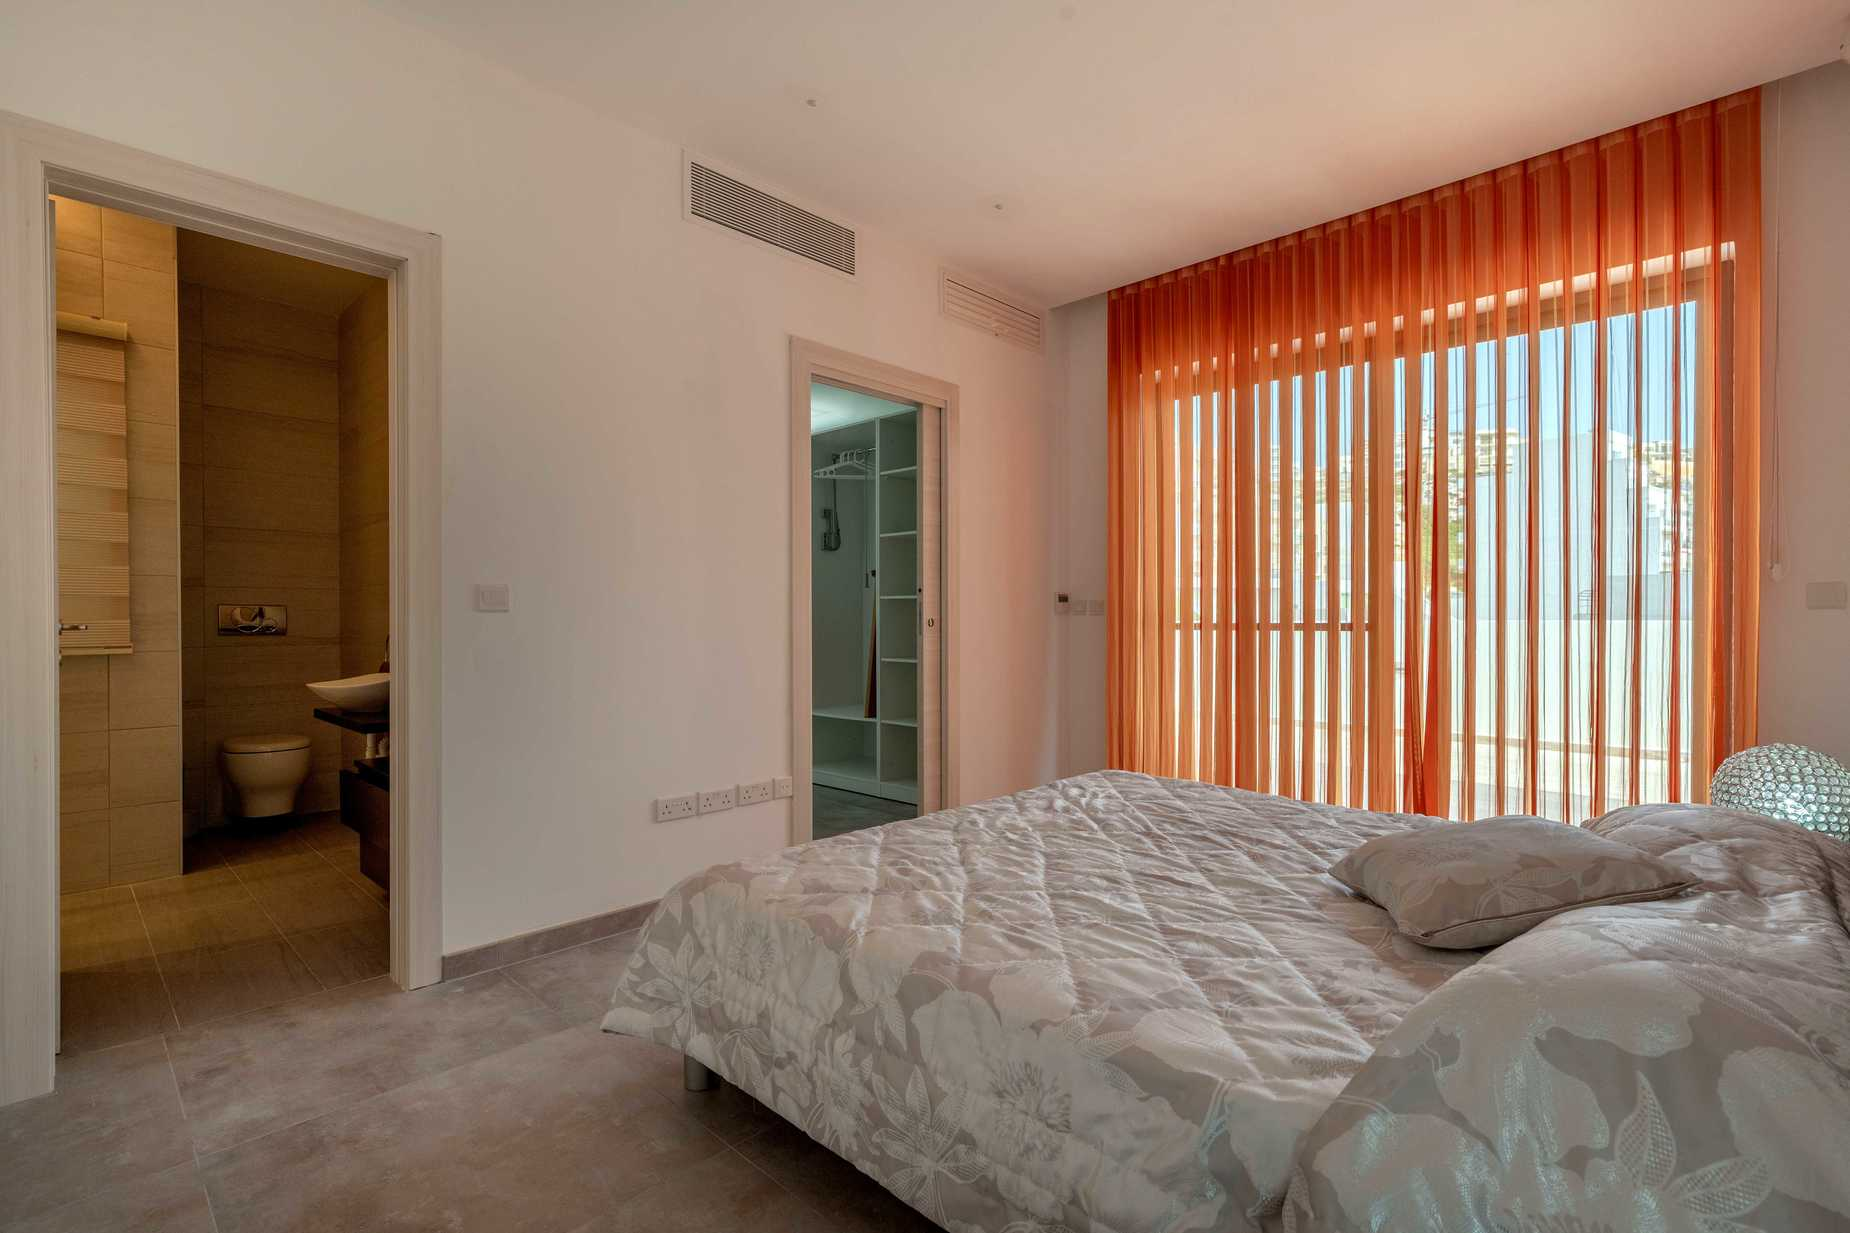 3 bed Penthouse For Rent in Mellieha, Mellieha - thumb 13